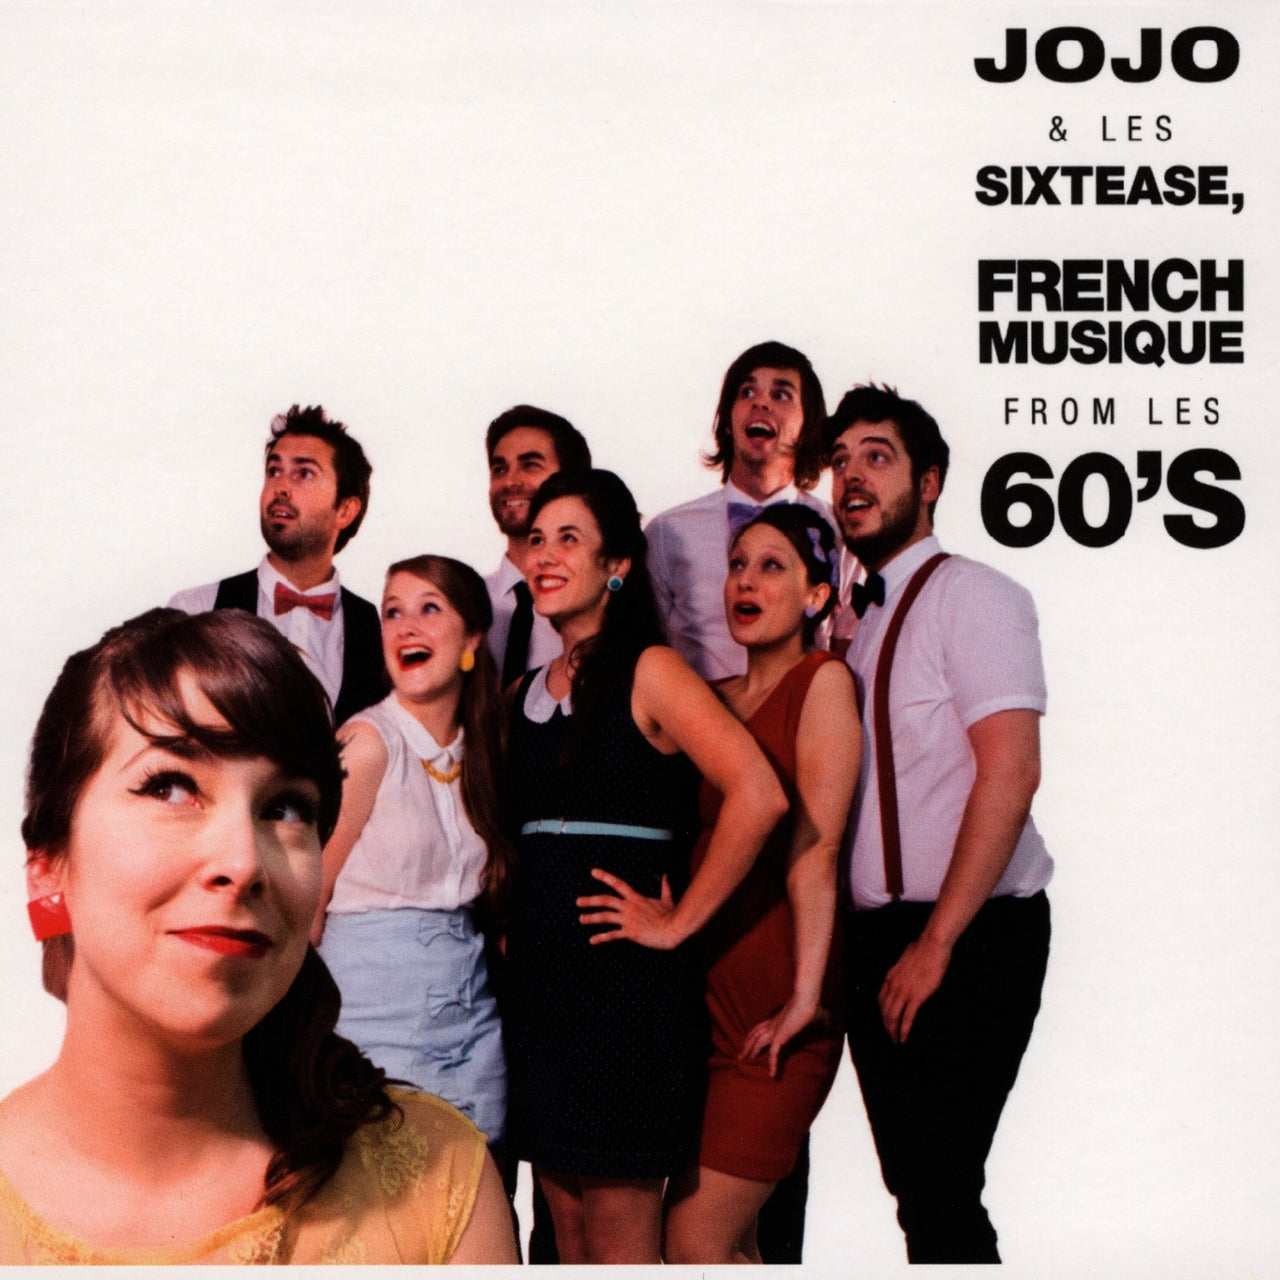 Jojo : French musique from les 60's  CD